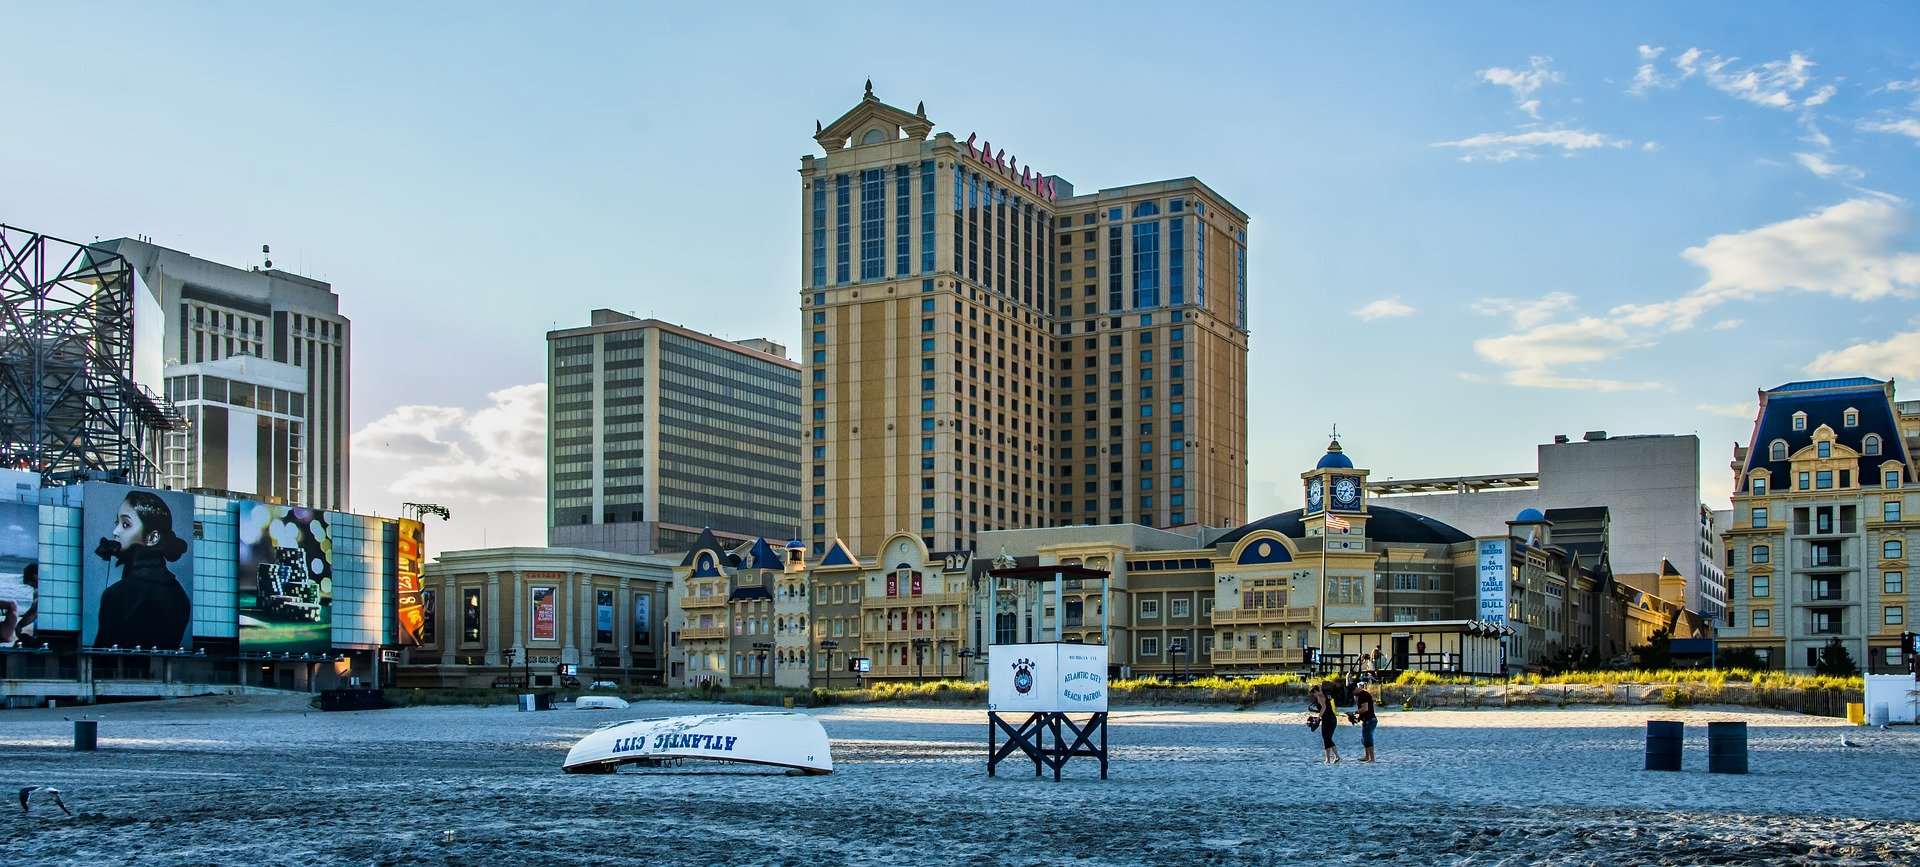 The Atlantic City in New Jersey - VeteranCarDonations.org